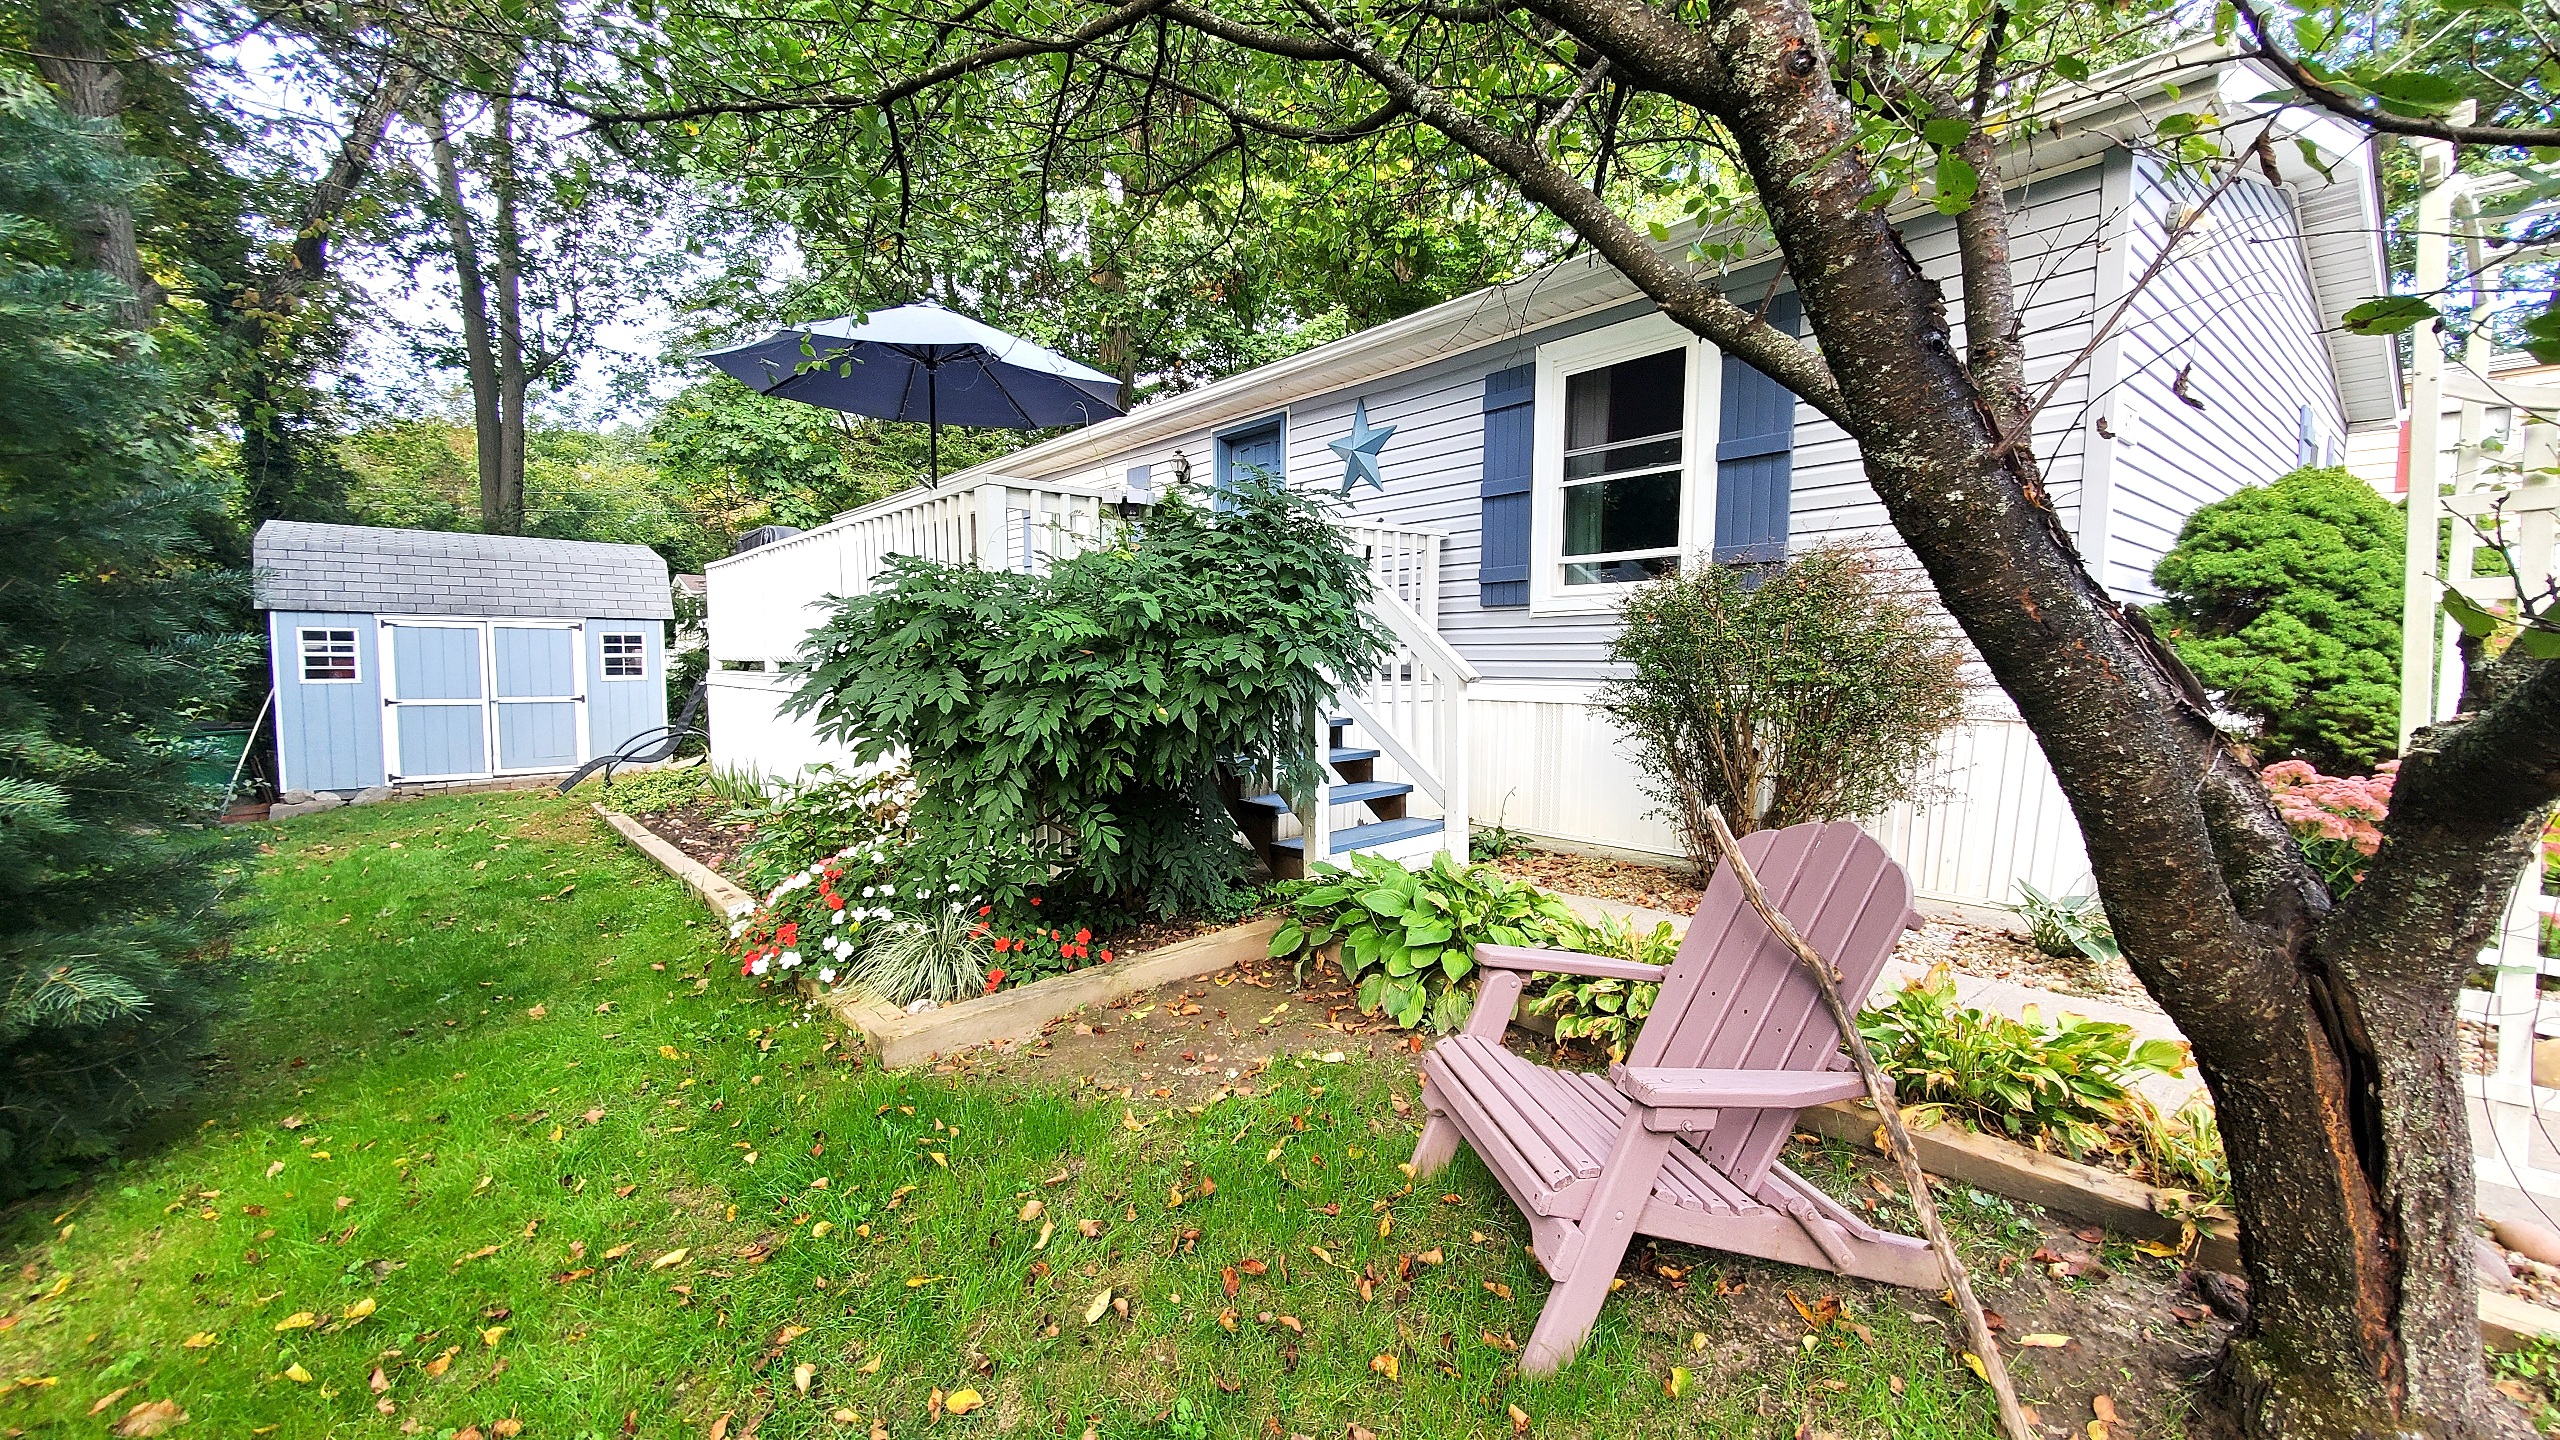 Manufactured Home in Wappingers Park with Creek View & Fishing